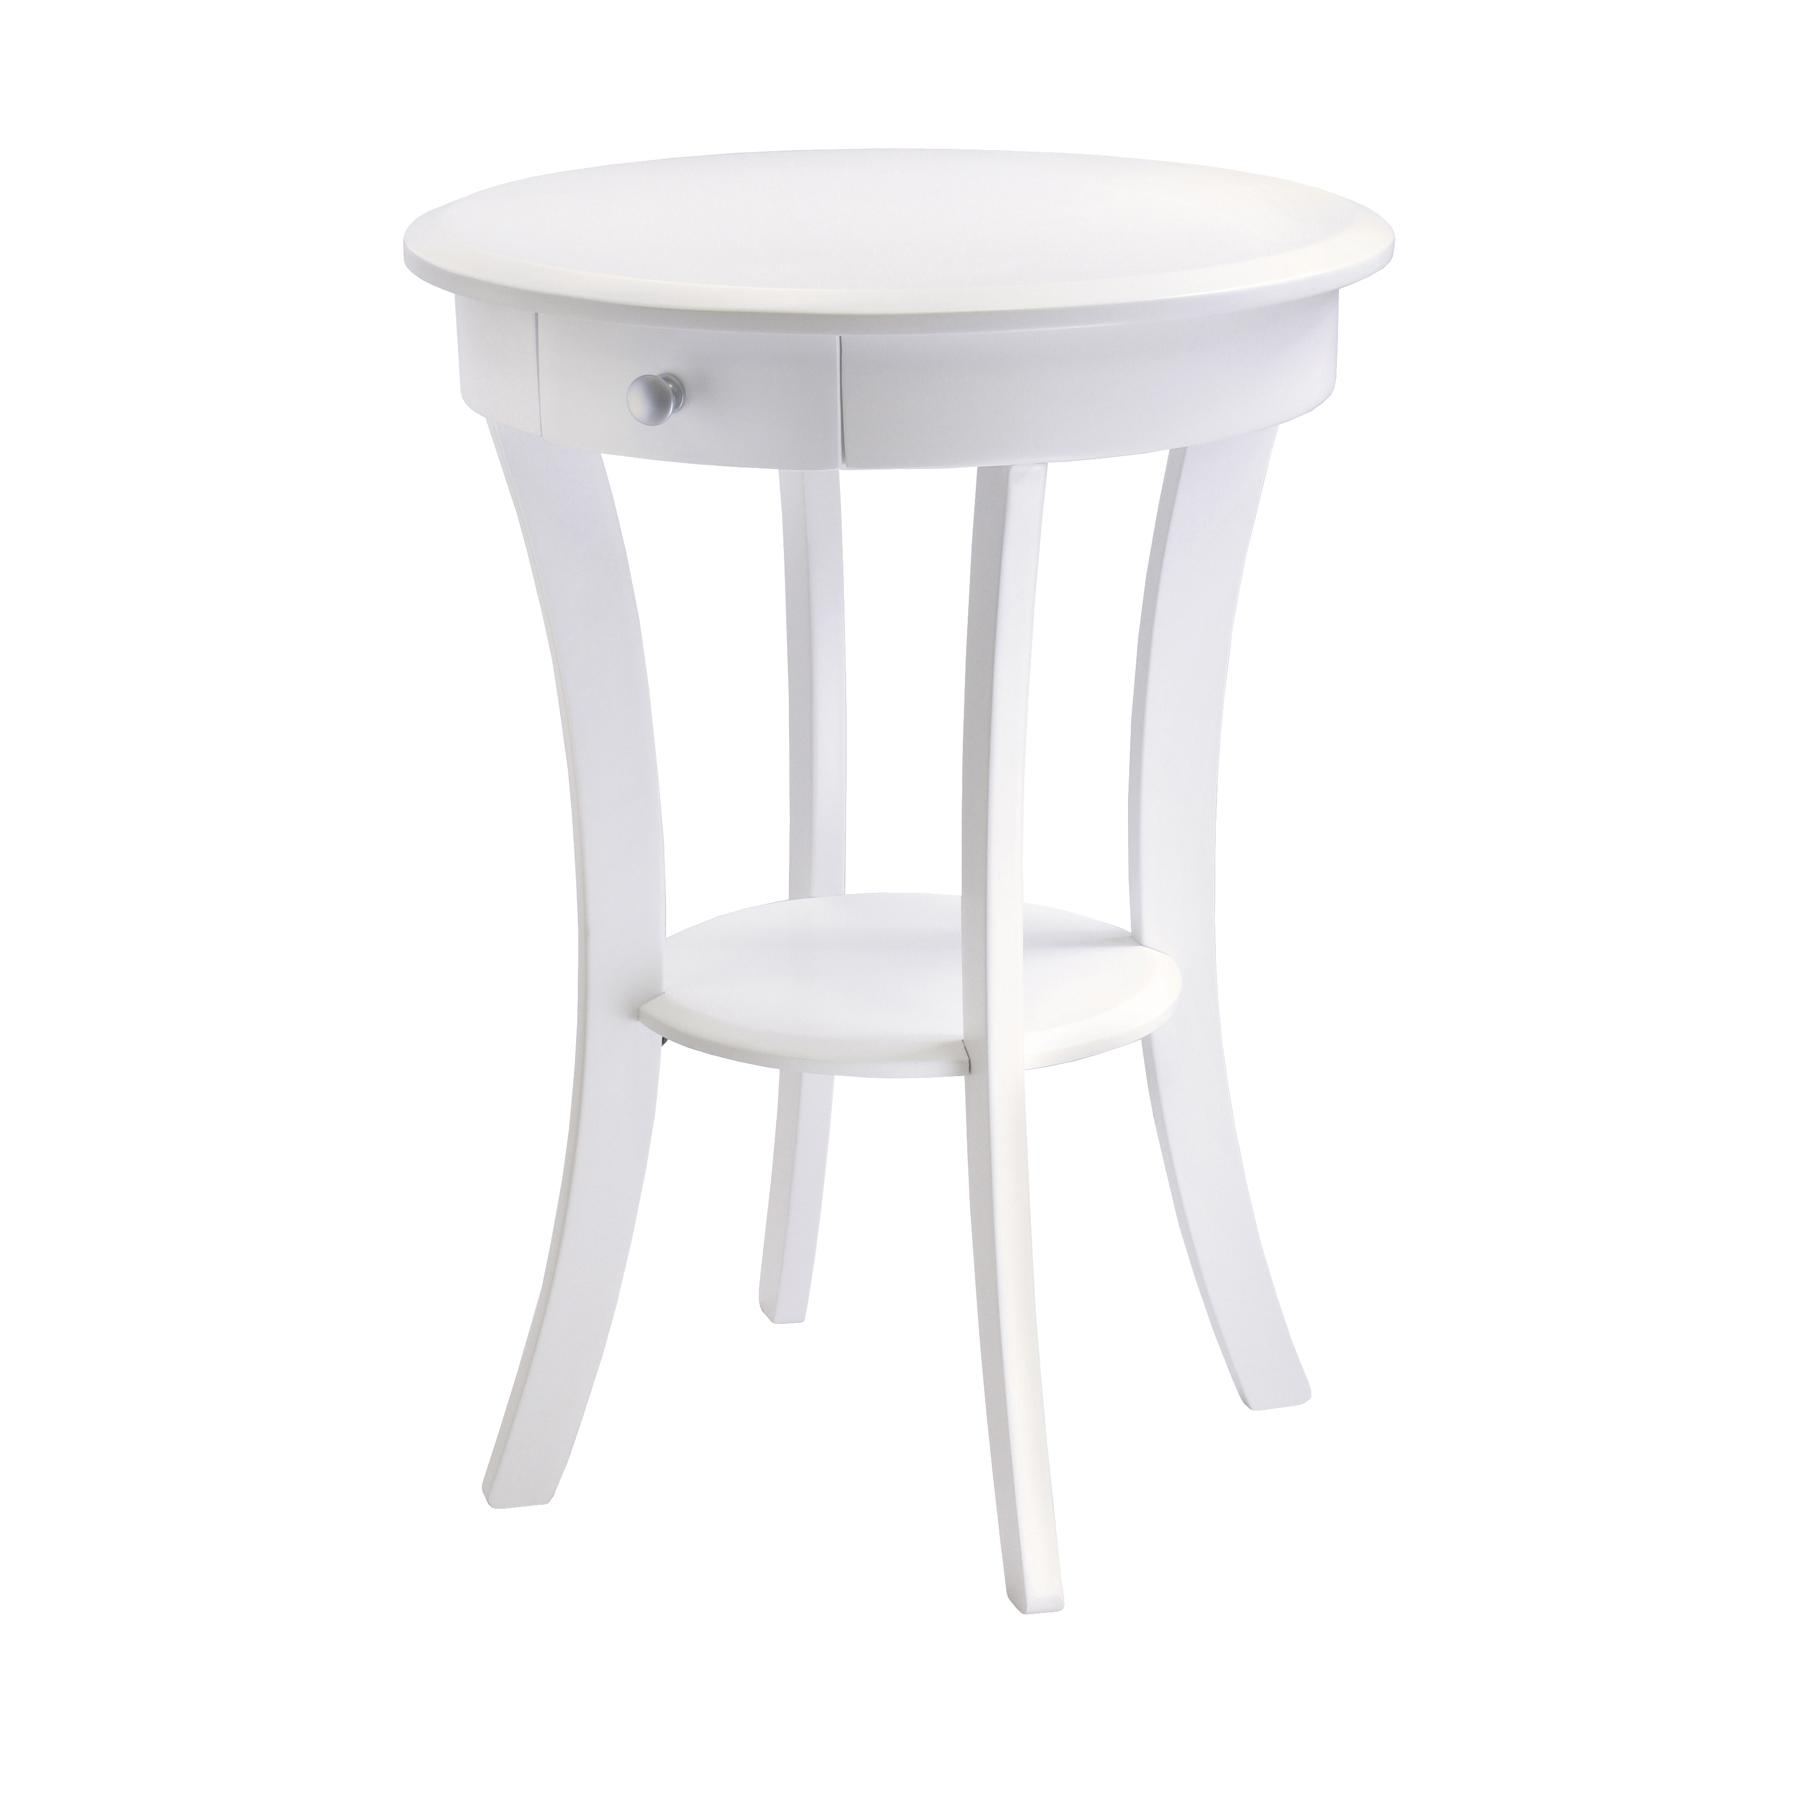 Winsome wood sasha accent table with drawer for Off white round table